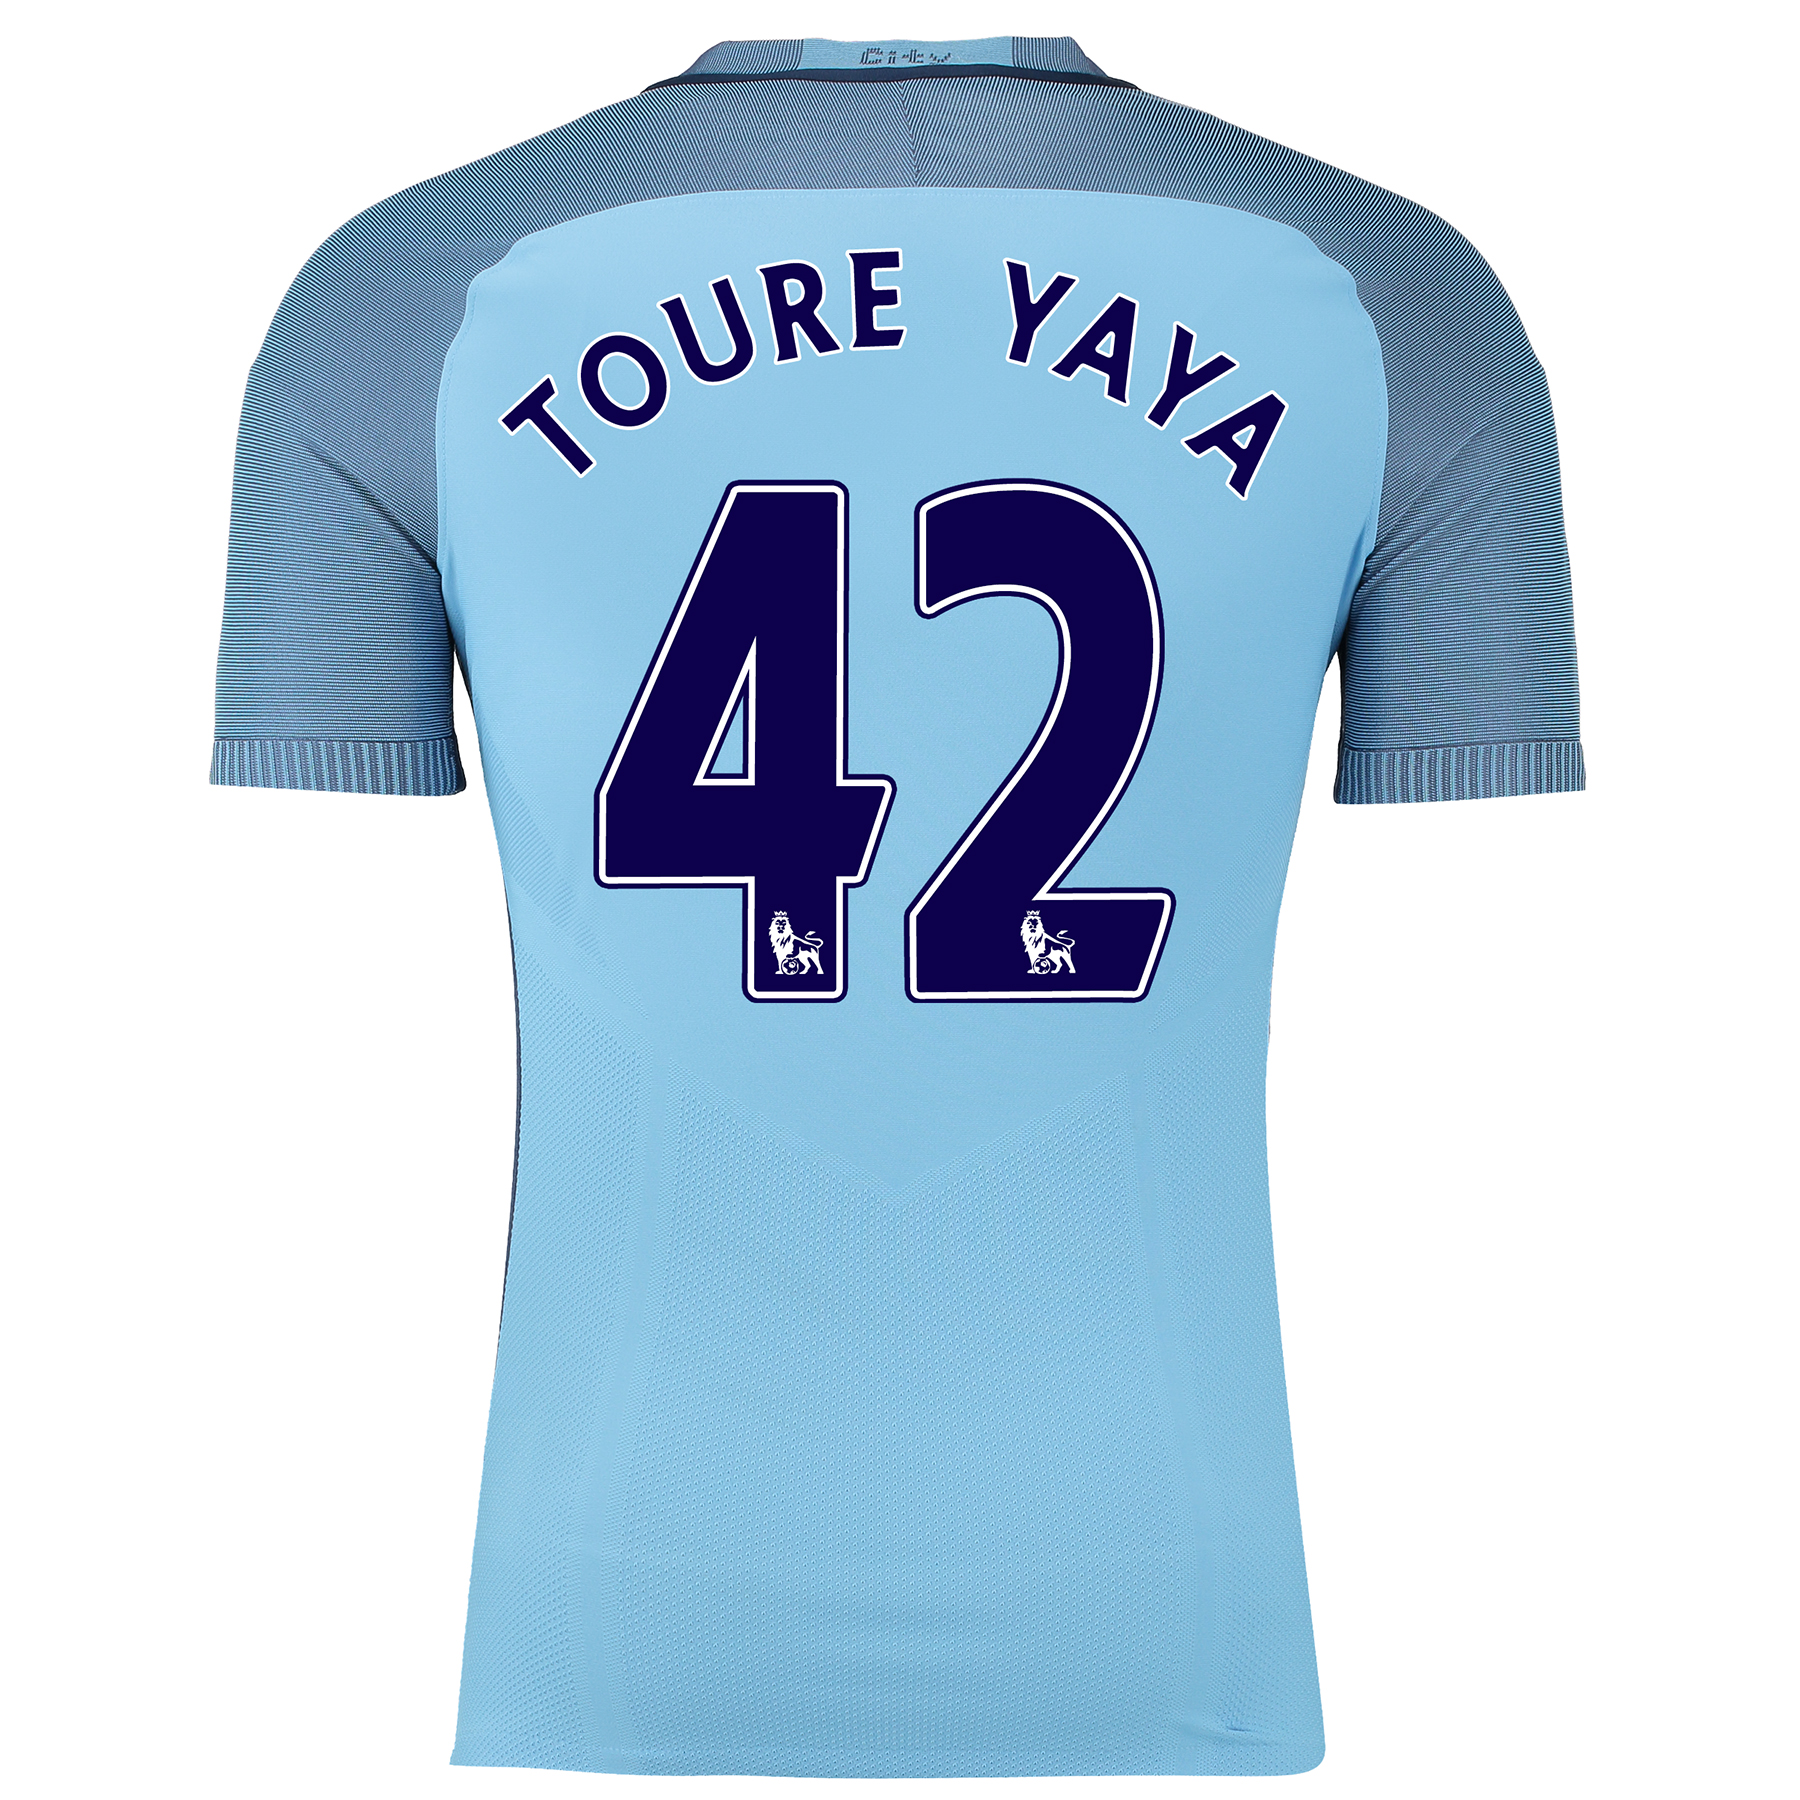 Manchester City Home Match Shirt 2016-17 with Toure Yaya 42 printing